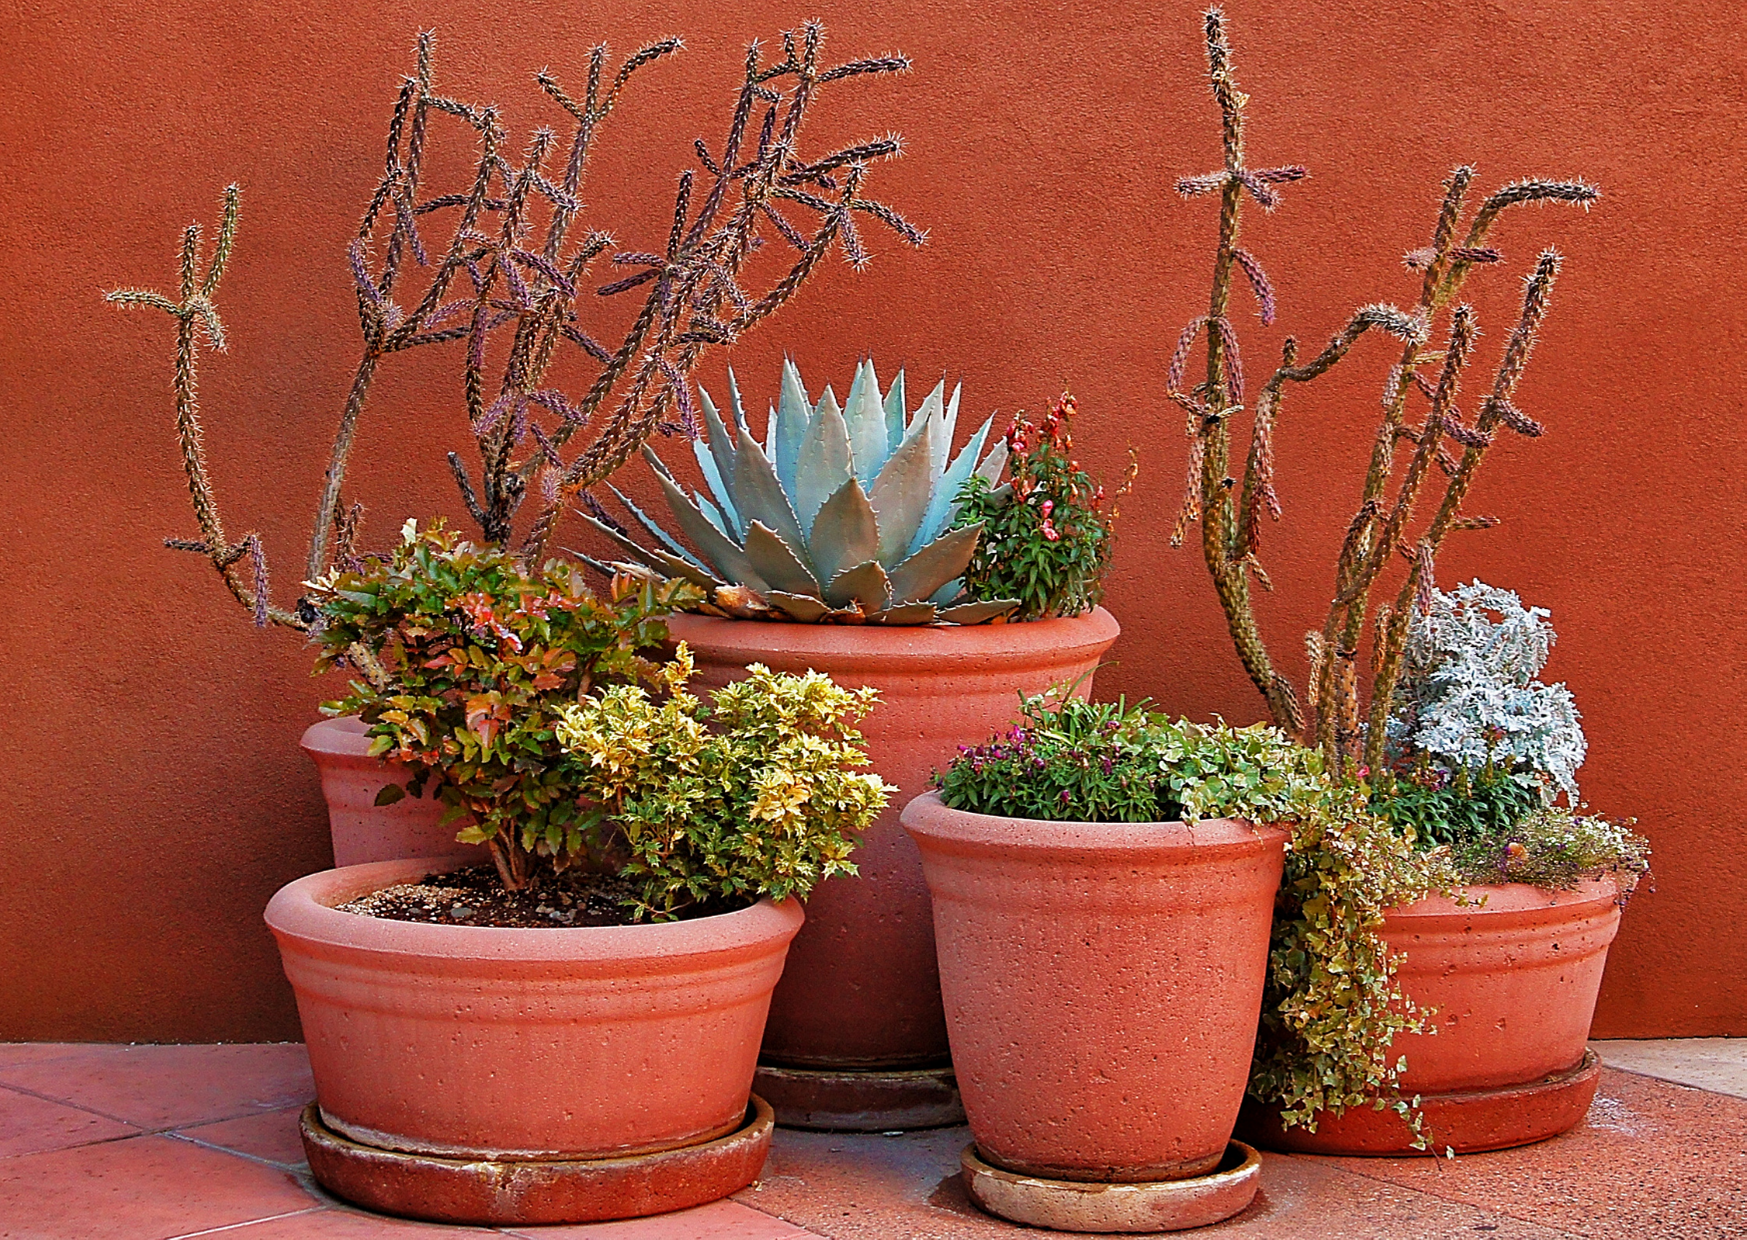 diffent kinds of potted plants